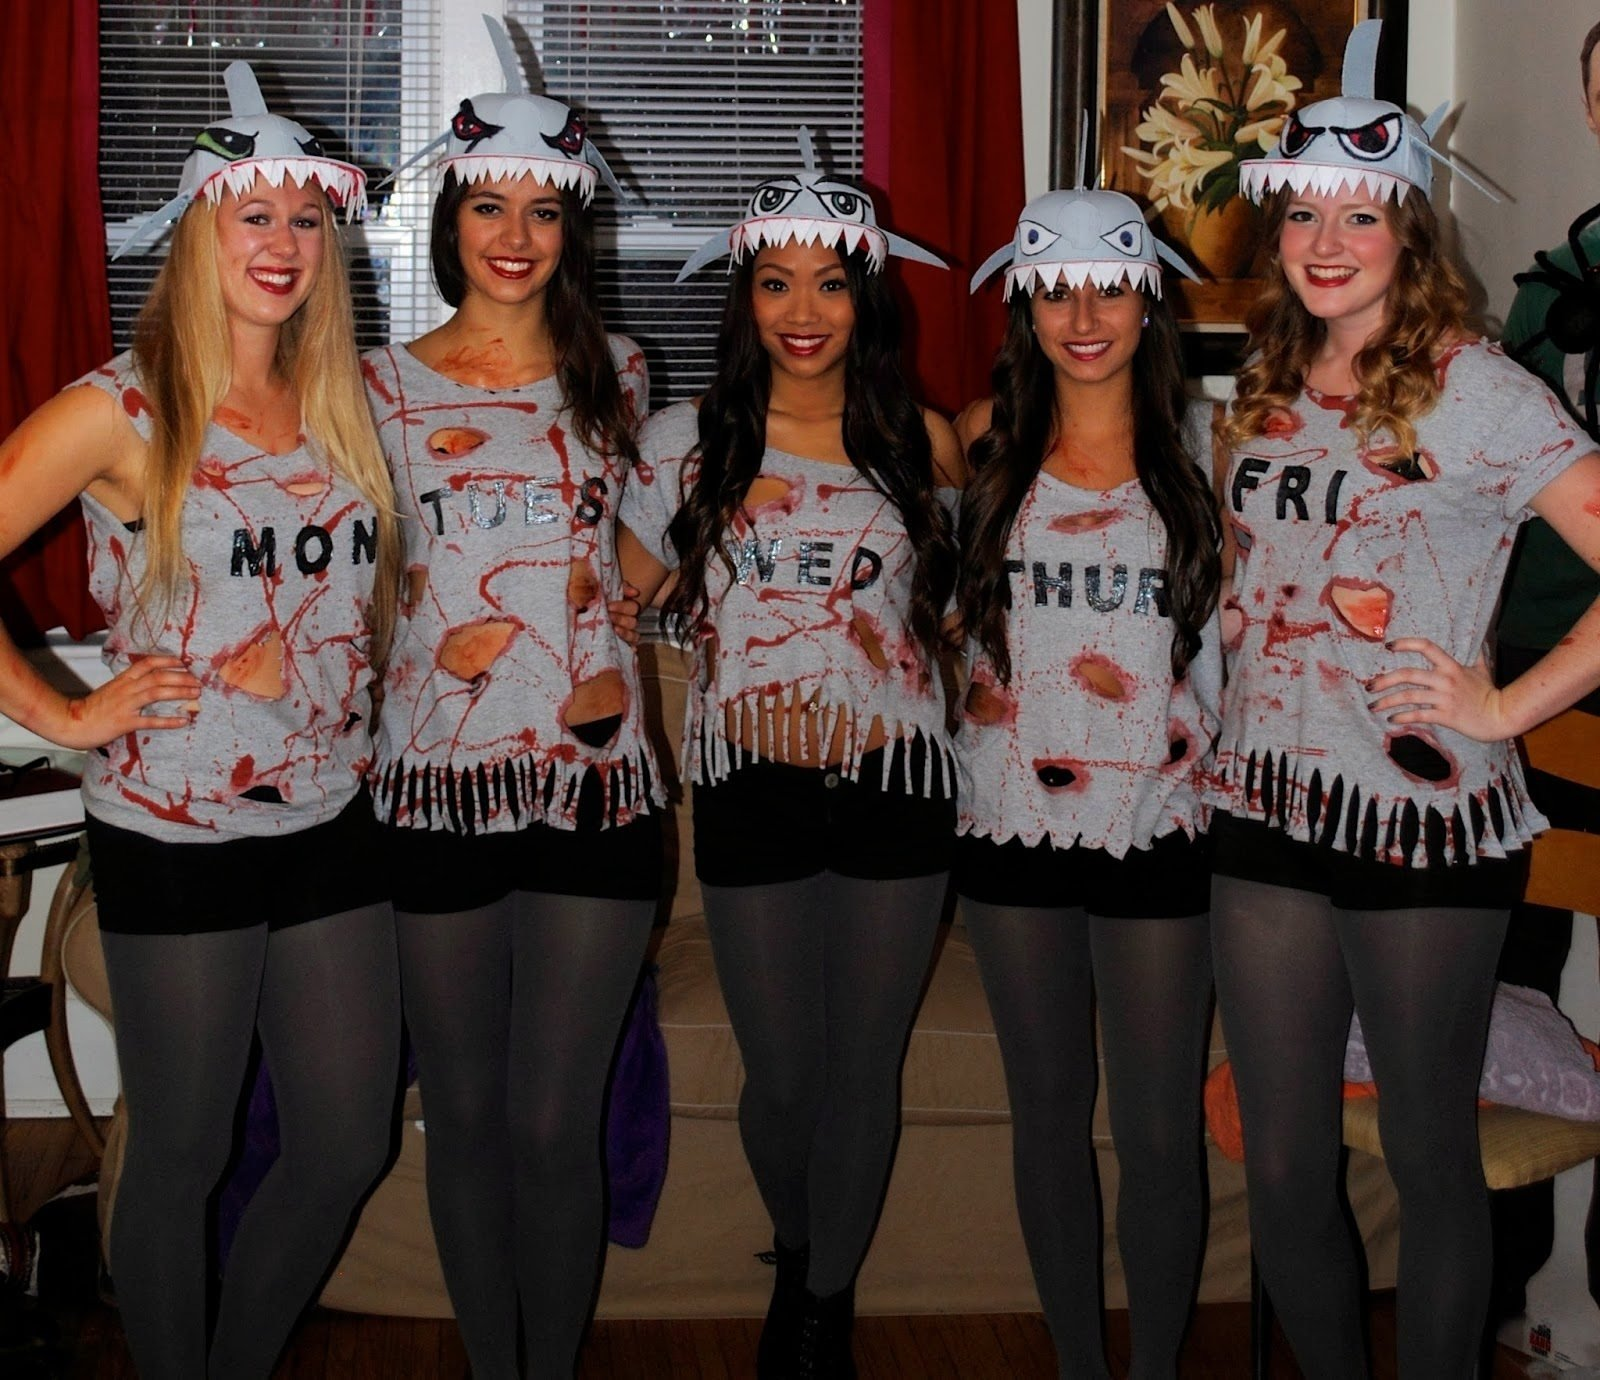 10 Trendy Girl Group Halloween Costume Ideas this list of group halloween costume ideas will blow your mind 8 2020